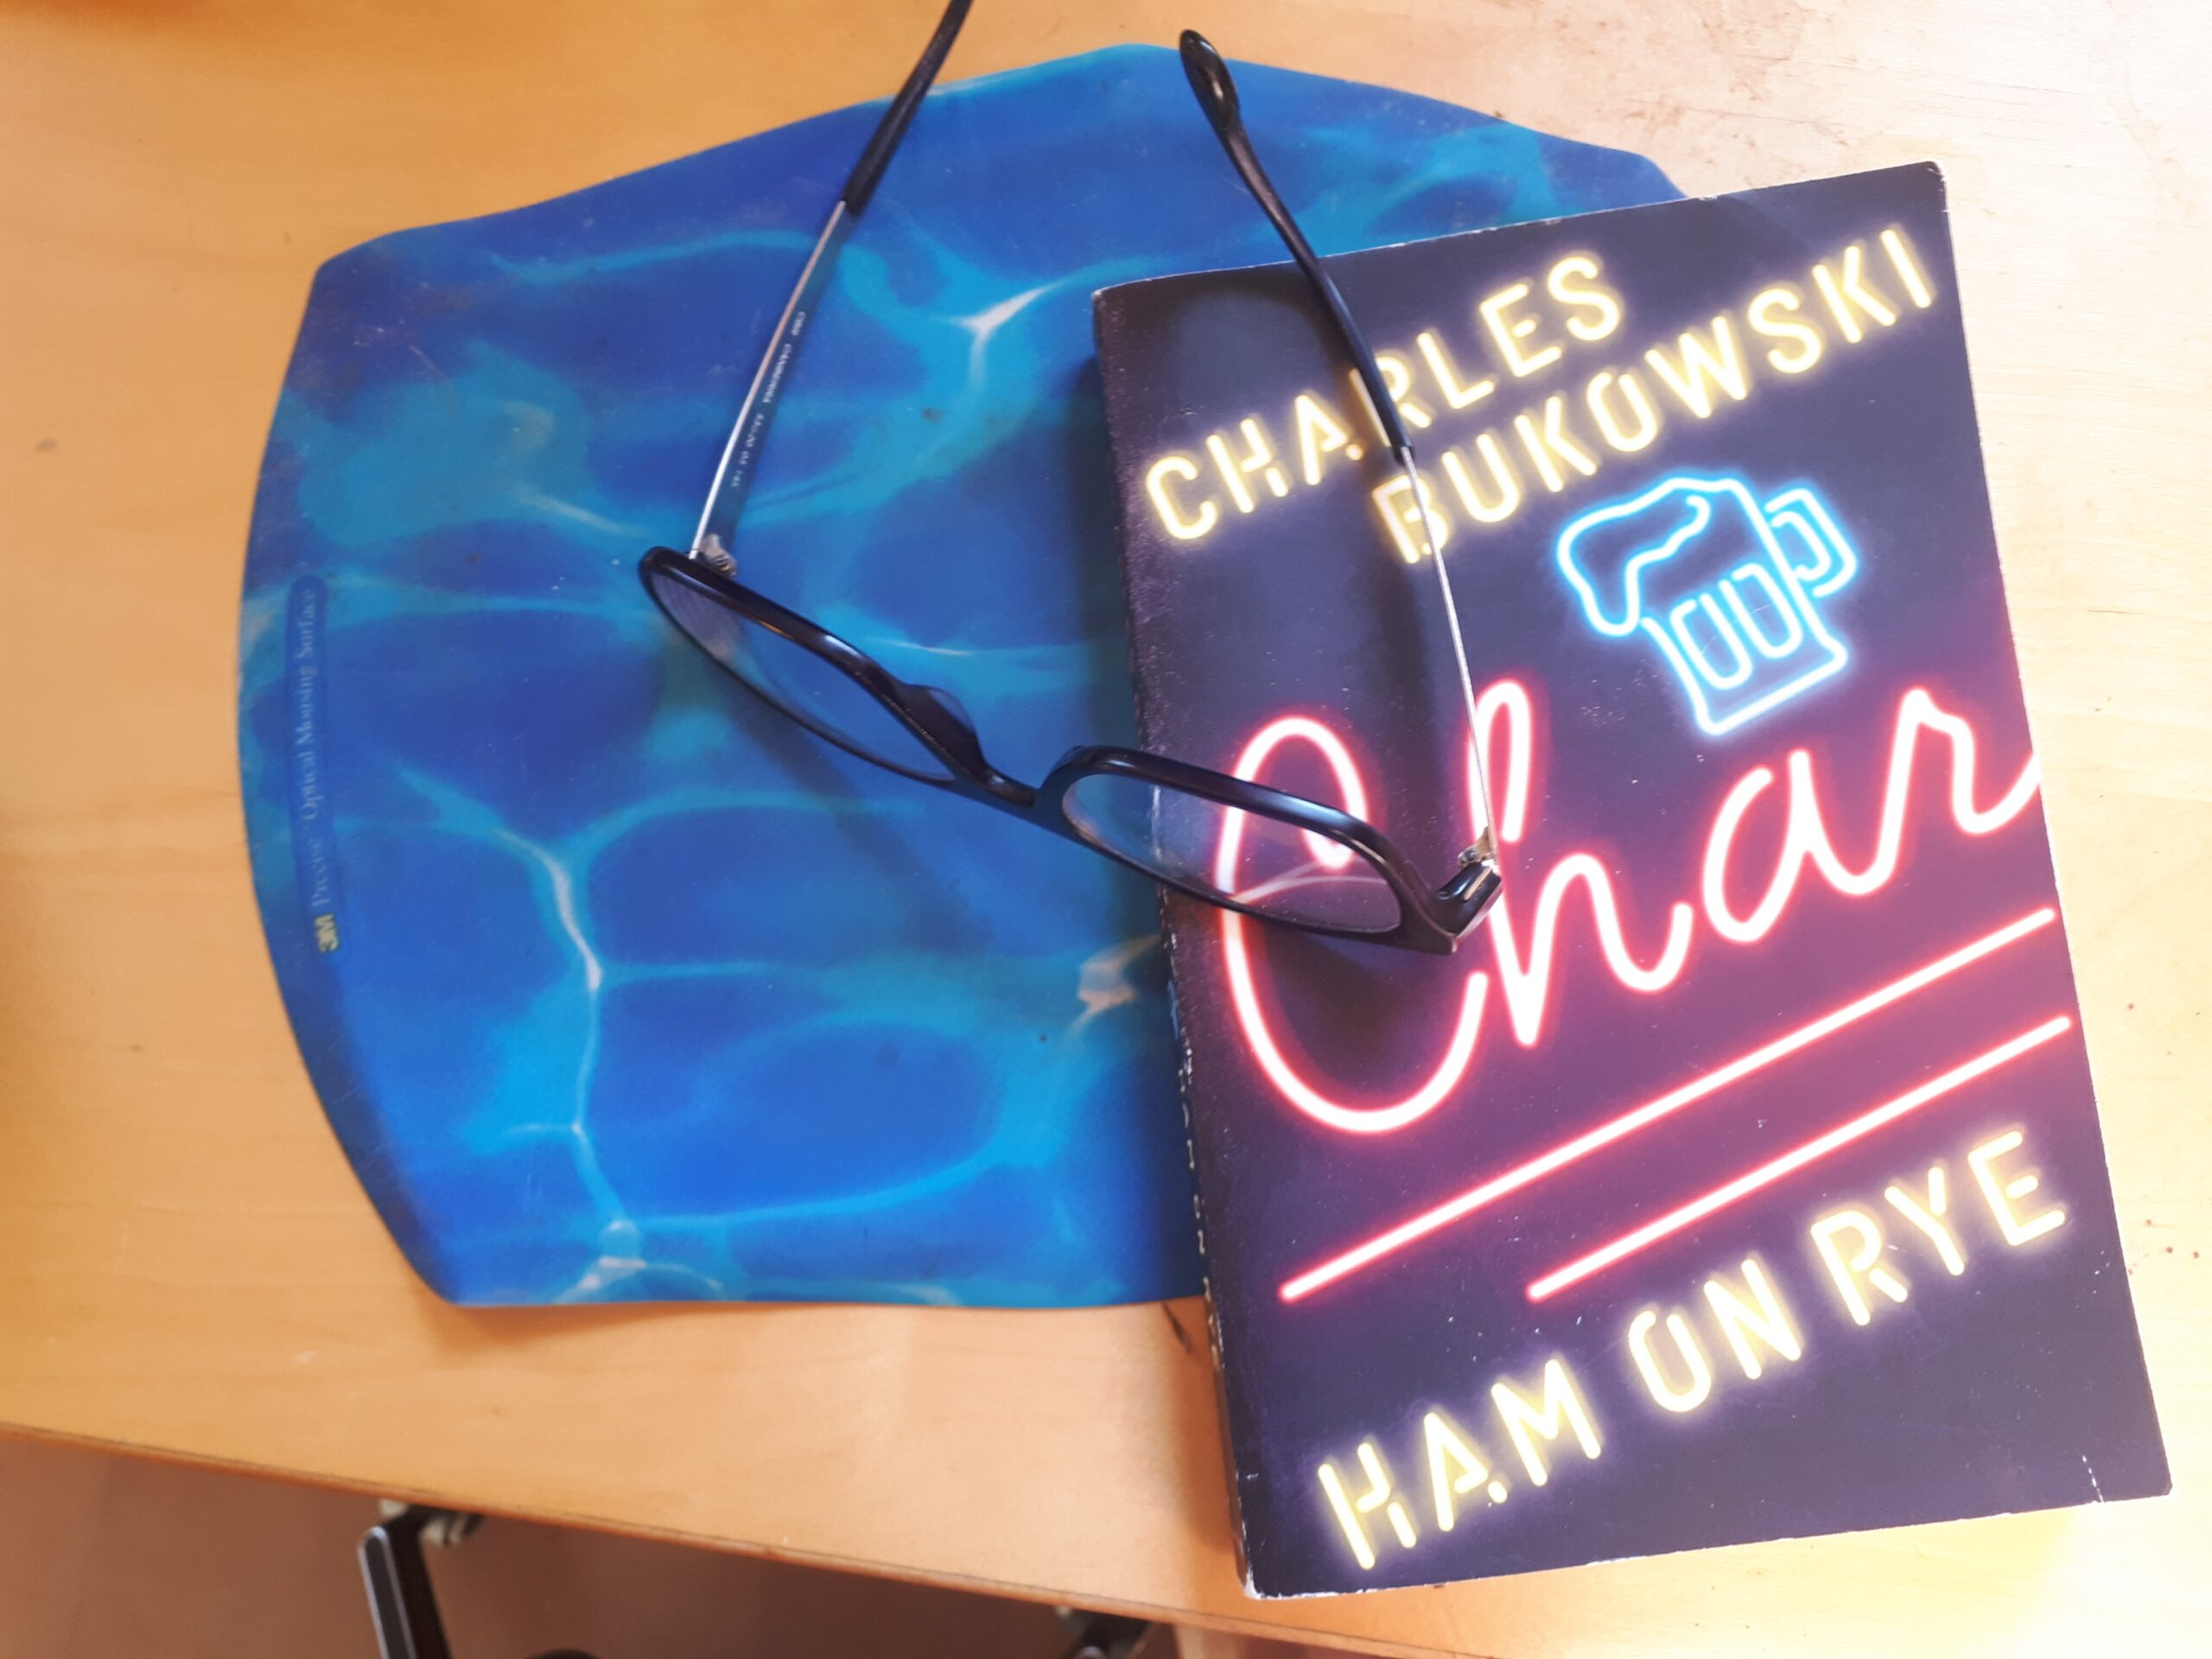 Copy of Charles Bukowski's Ham on Rye sitting on a mousepad with a pair of glasses on top.